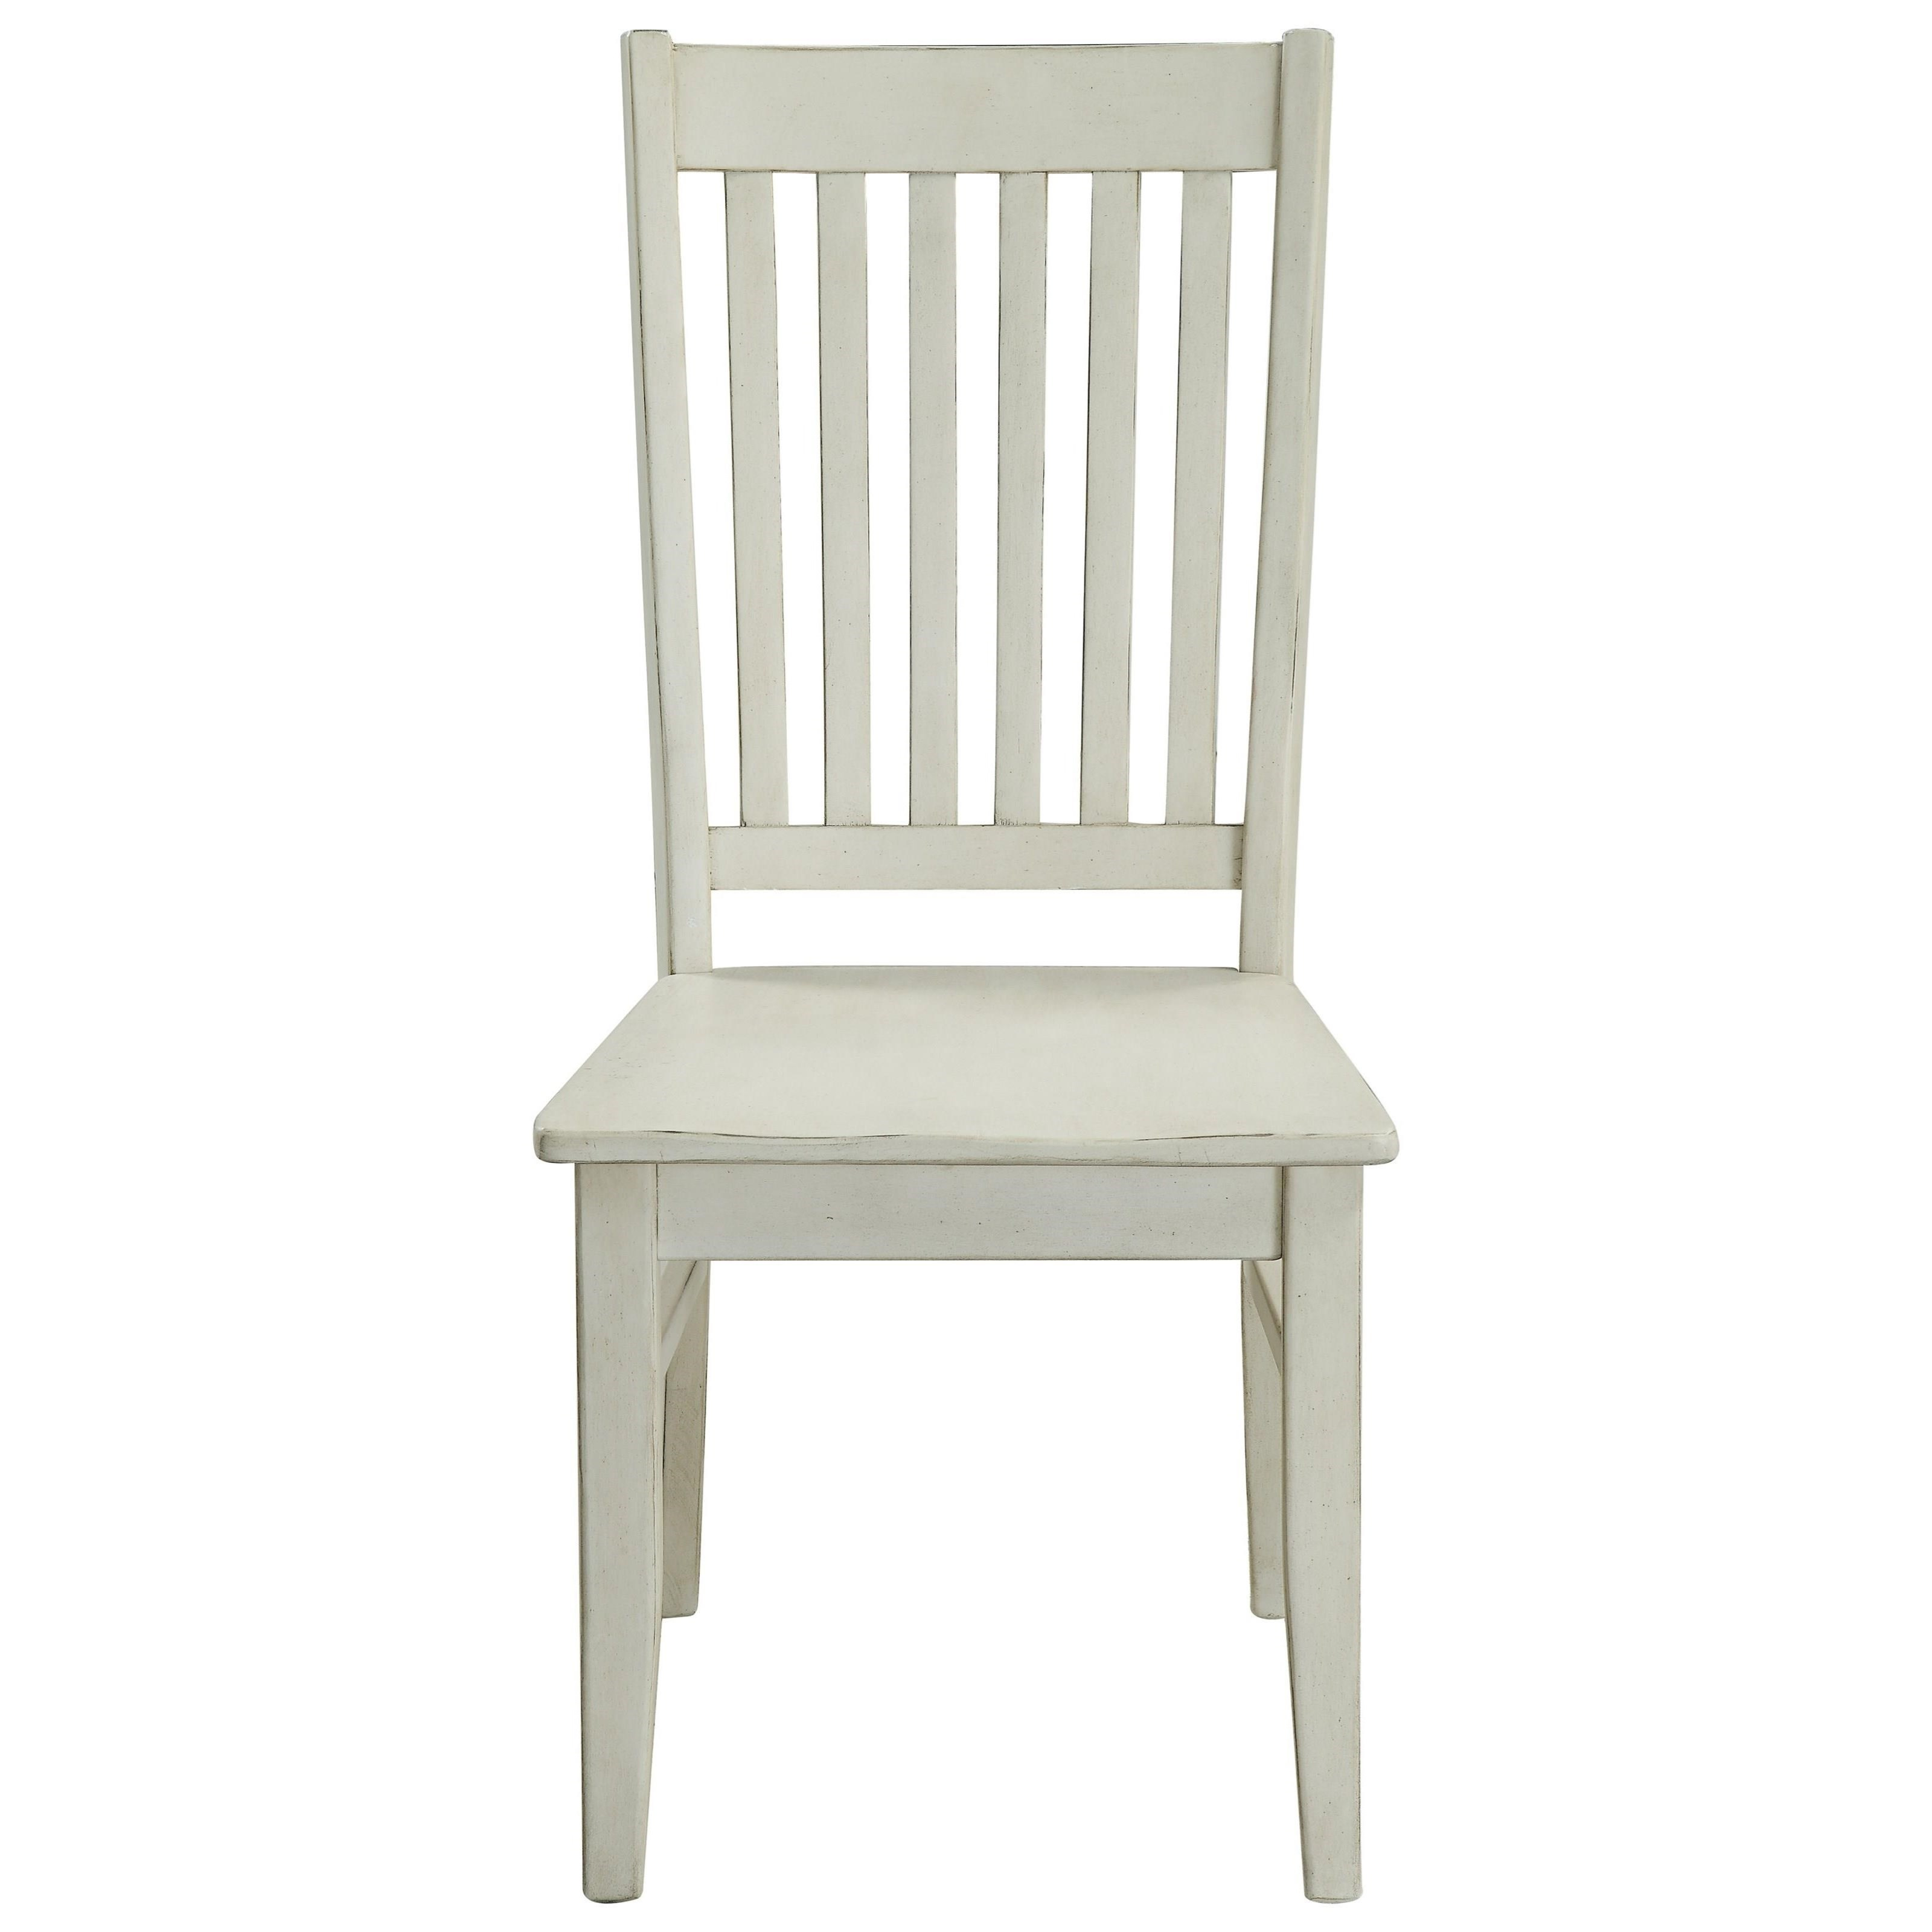 Shown In: Coast To Coast Imports Orchard Park Orchard Park Dining Chair